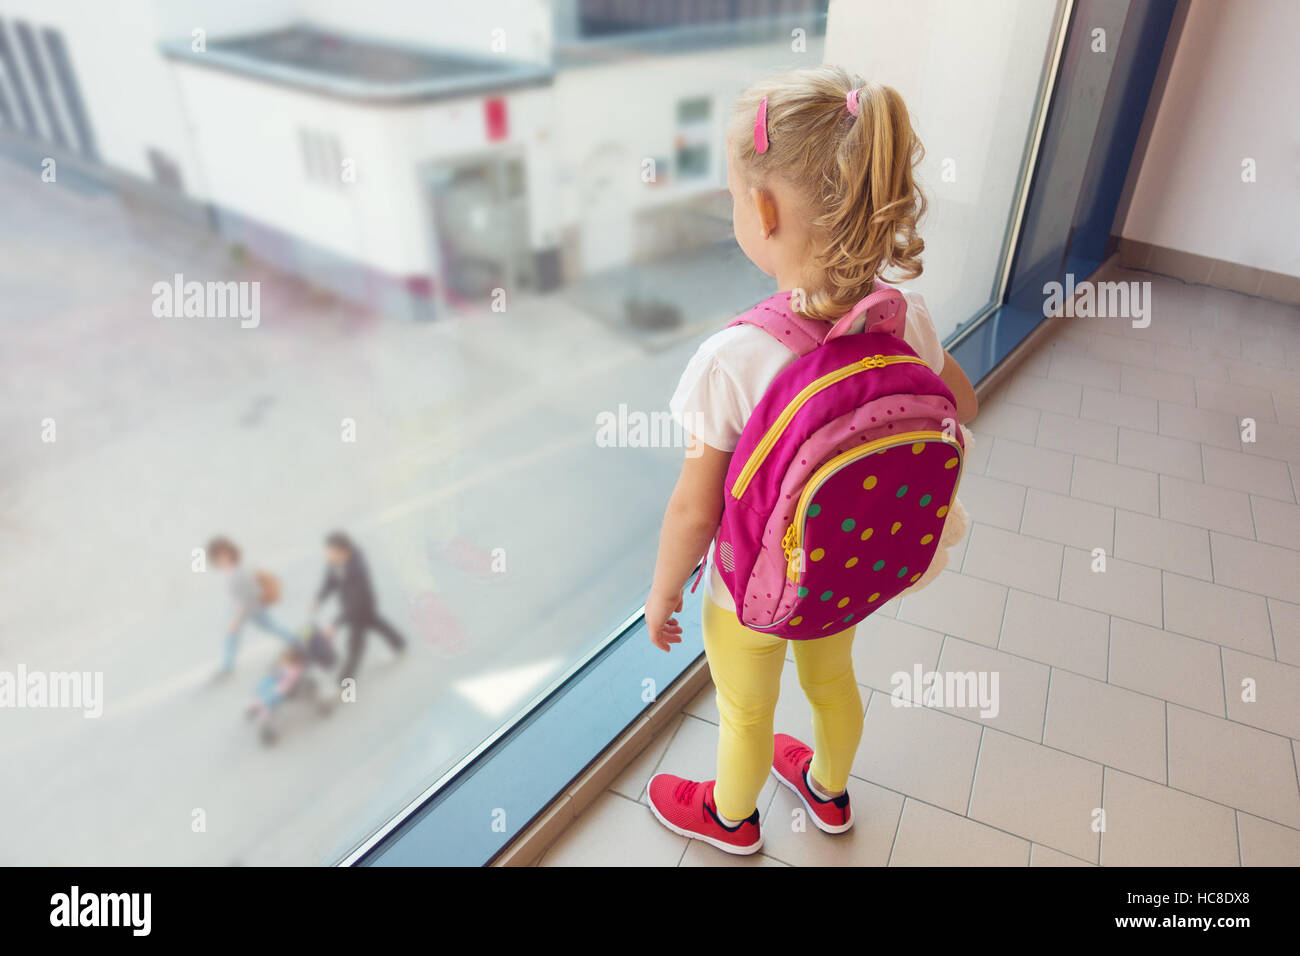 Lonely Child Waiting Someone Stock Photos Lonely Child Waiting